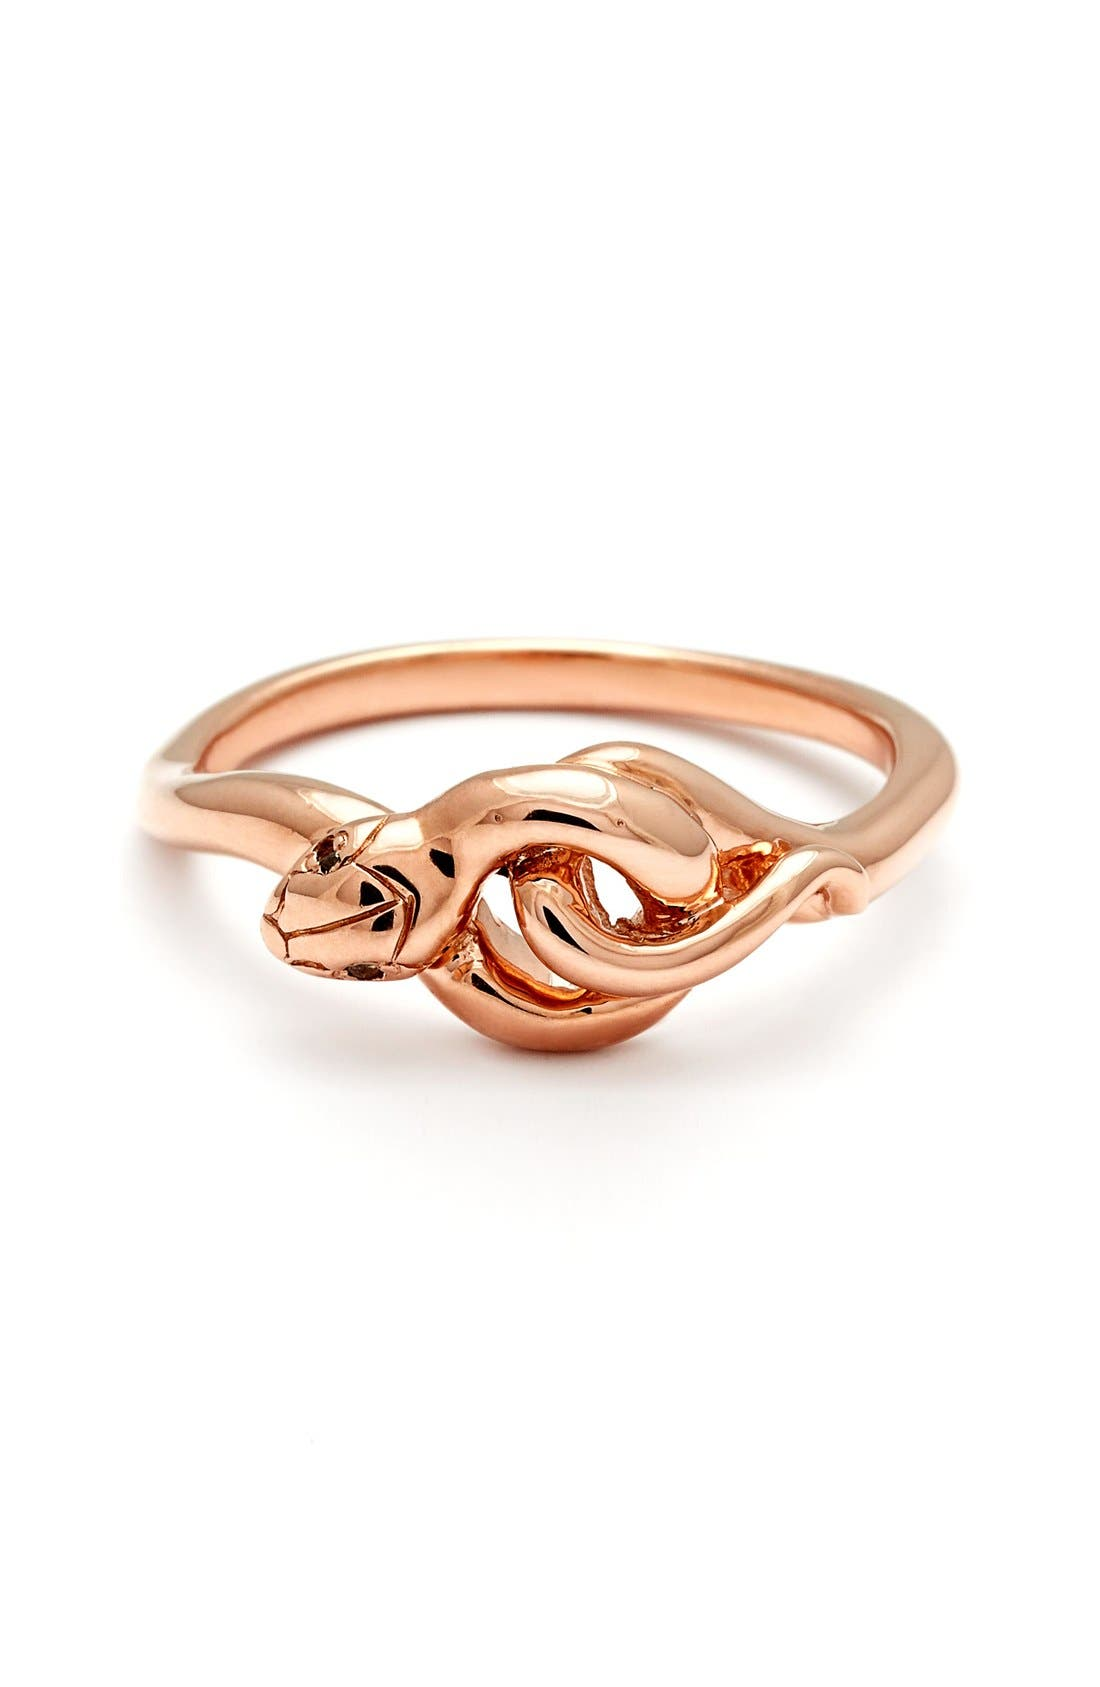 'Small Serpent' Rose Gold Ring,                         Main,                         color, ROSE/ GOLD/ CHAMPAGNE